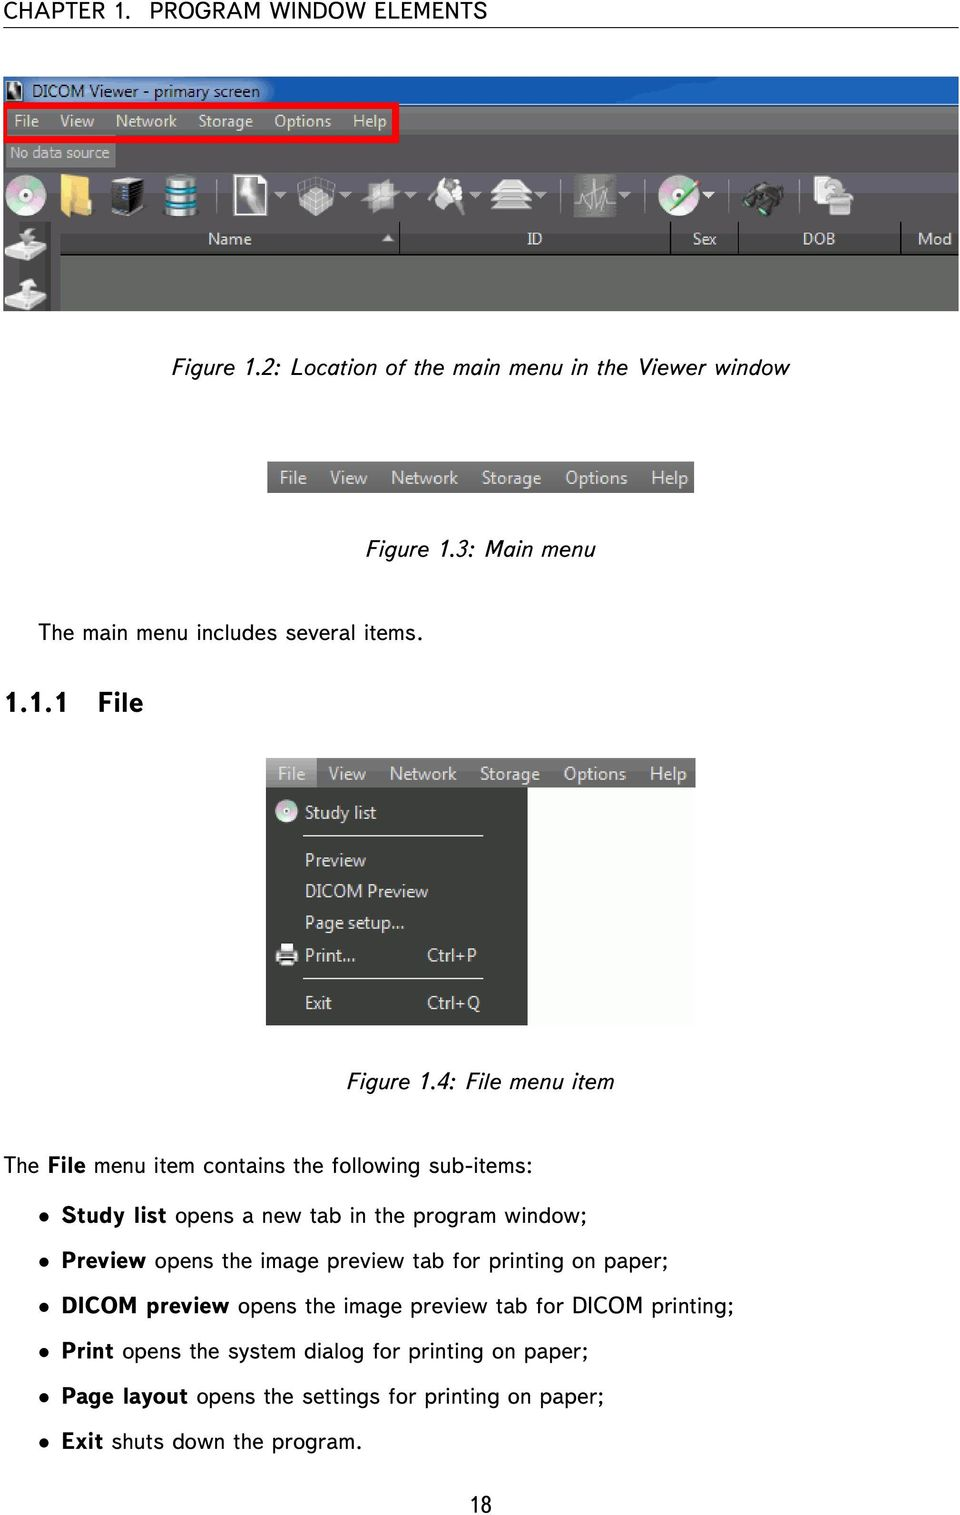 INOBITEC DICOM VIEWER  User Manual  Version 1 8  Inobitec